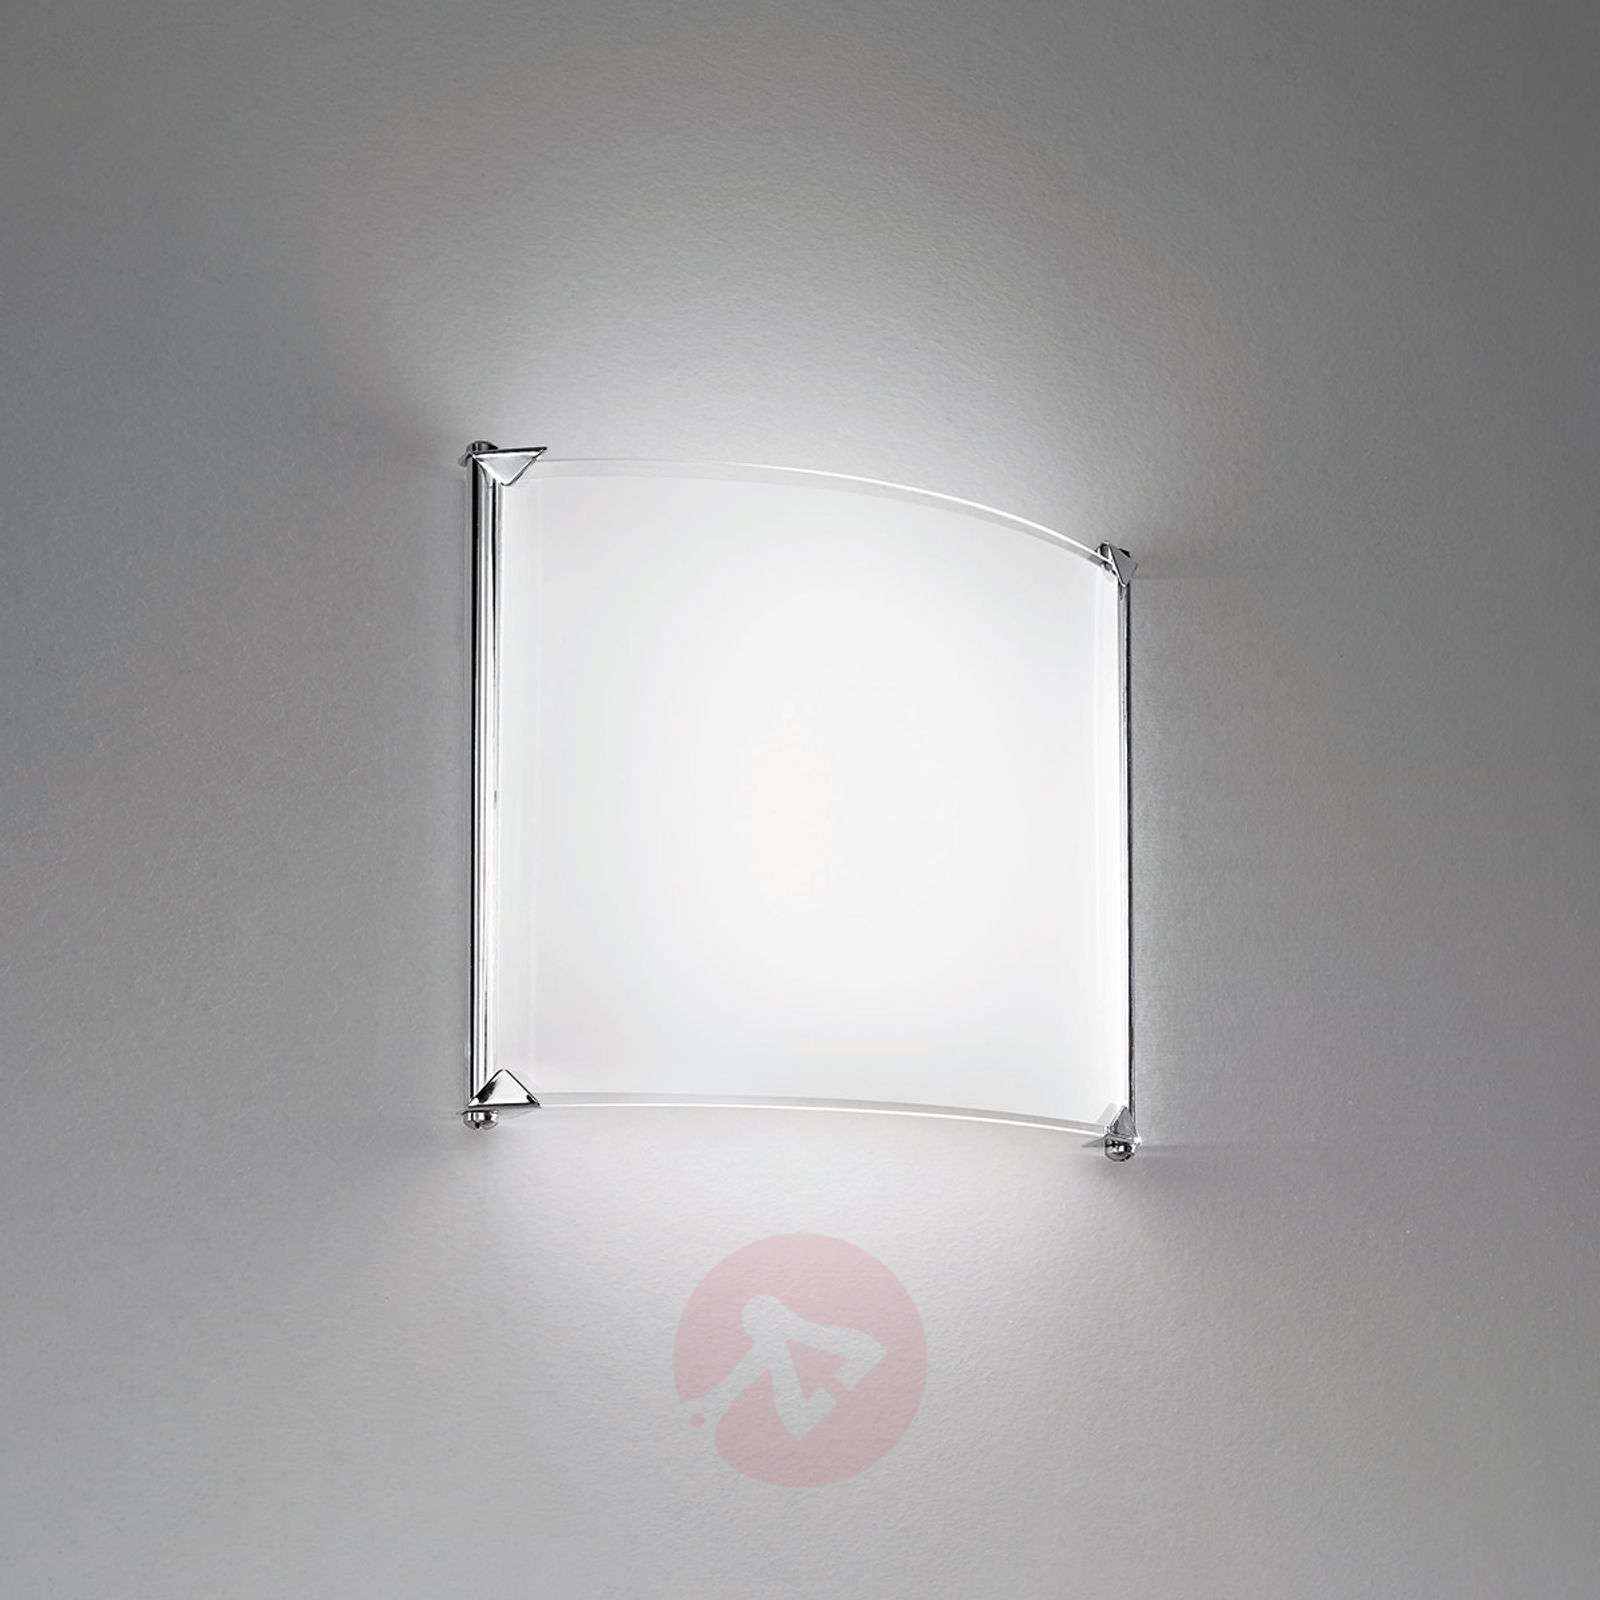 Brixi LED Wall Light Simple Warm White Lights.co.uk